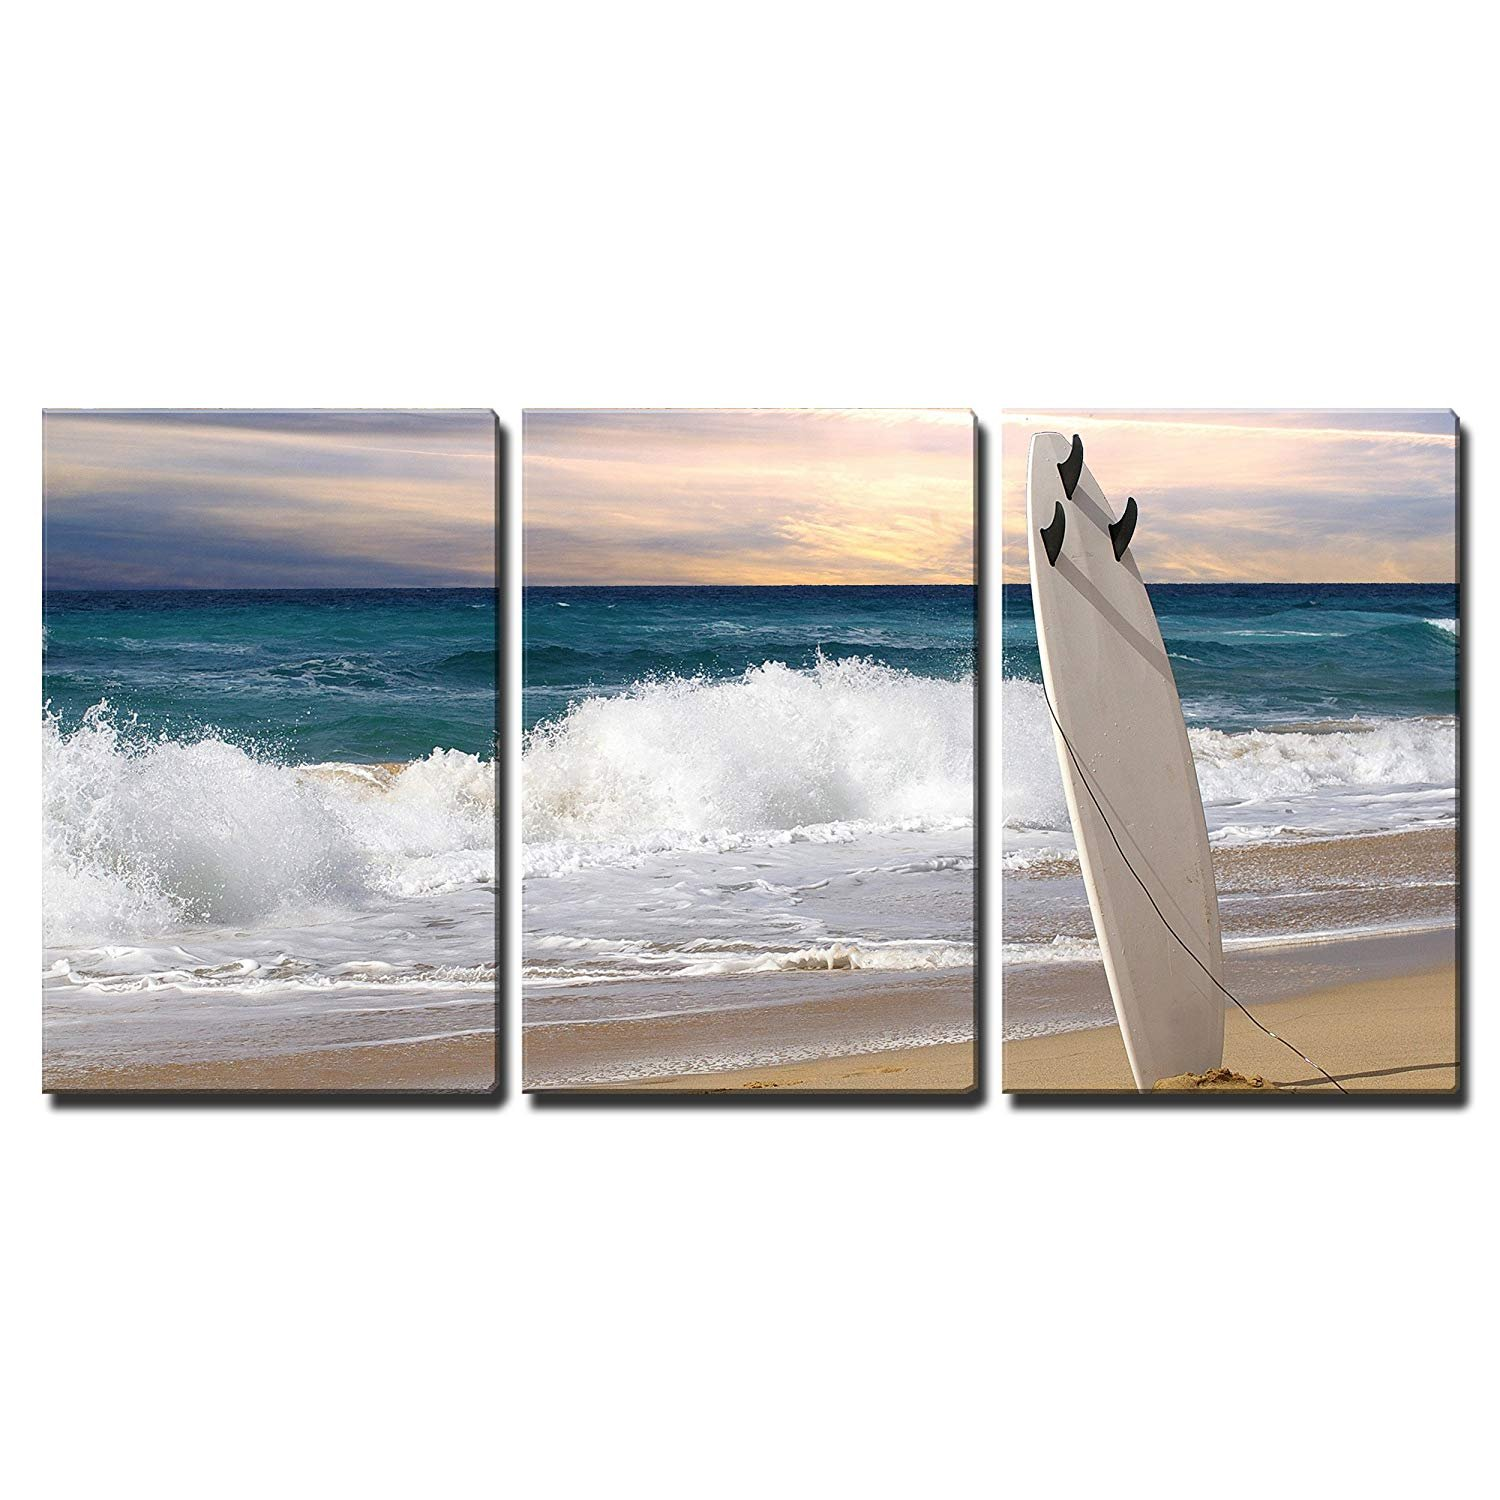 wall26-3 Piece Canvas Wall Art - Surfboard on Fuerteventura Beach - Modern Home Decor Stretched and Framed Ready to Hang - 24''x36''x3 Panels